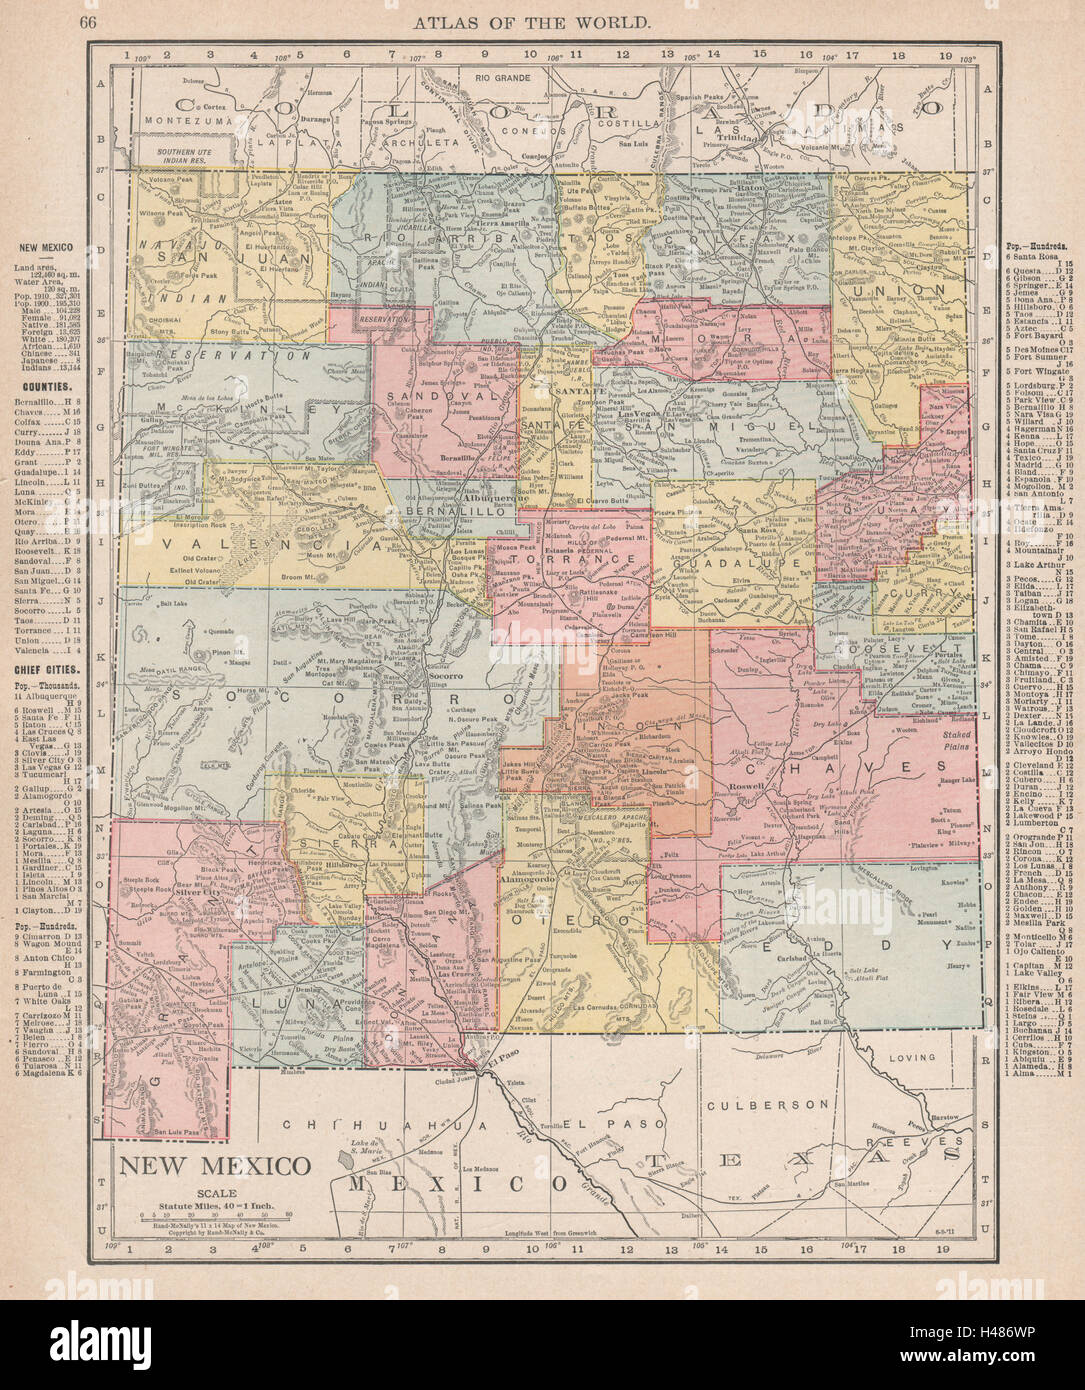 New Mexico State Map Showing Counties RAND MCNALLY Old - New mexico state map